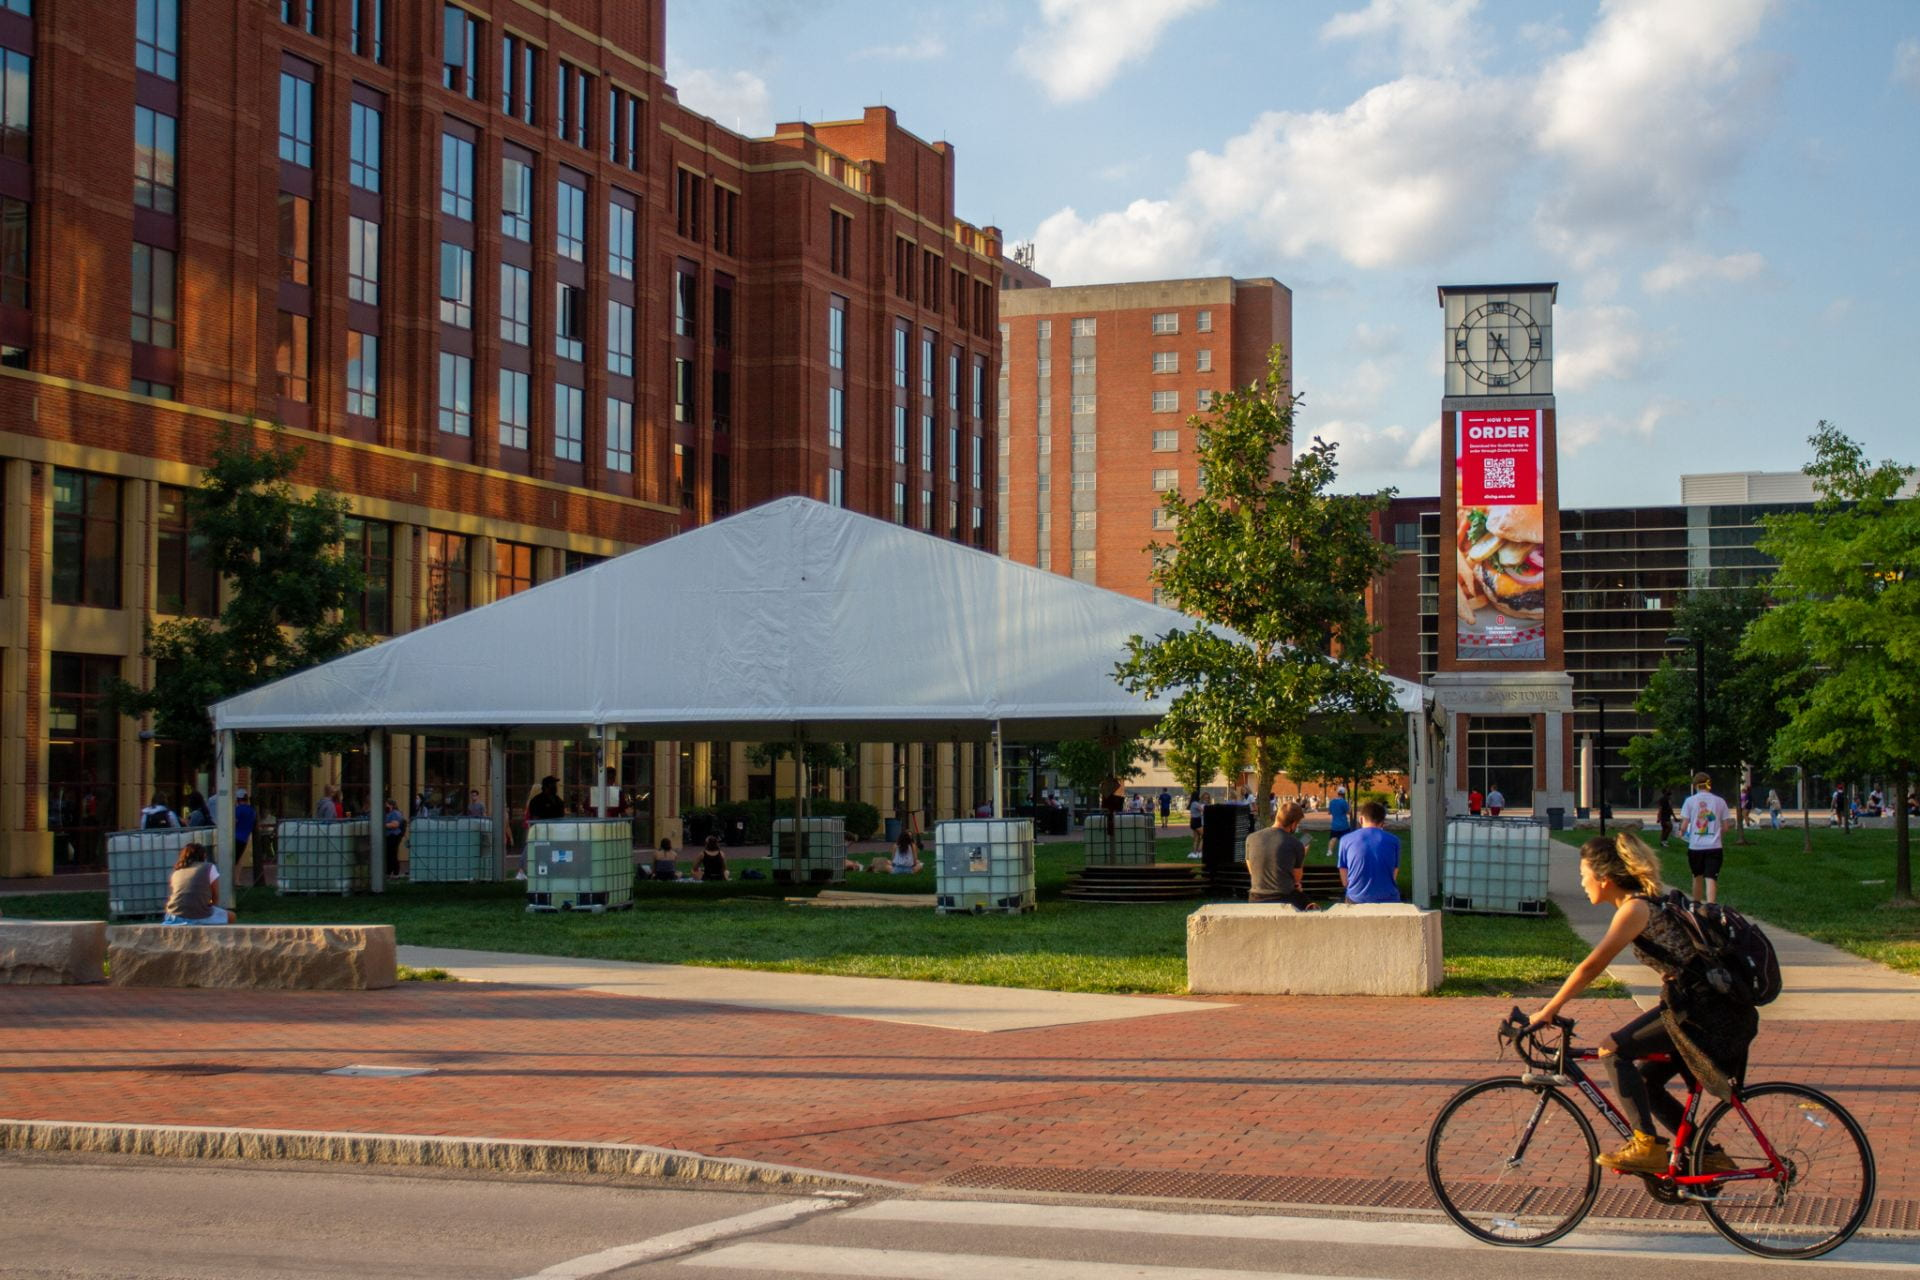 A newly constructed tent outside of Scott Residence Hall